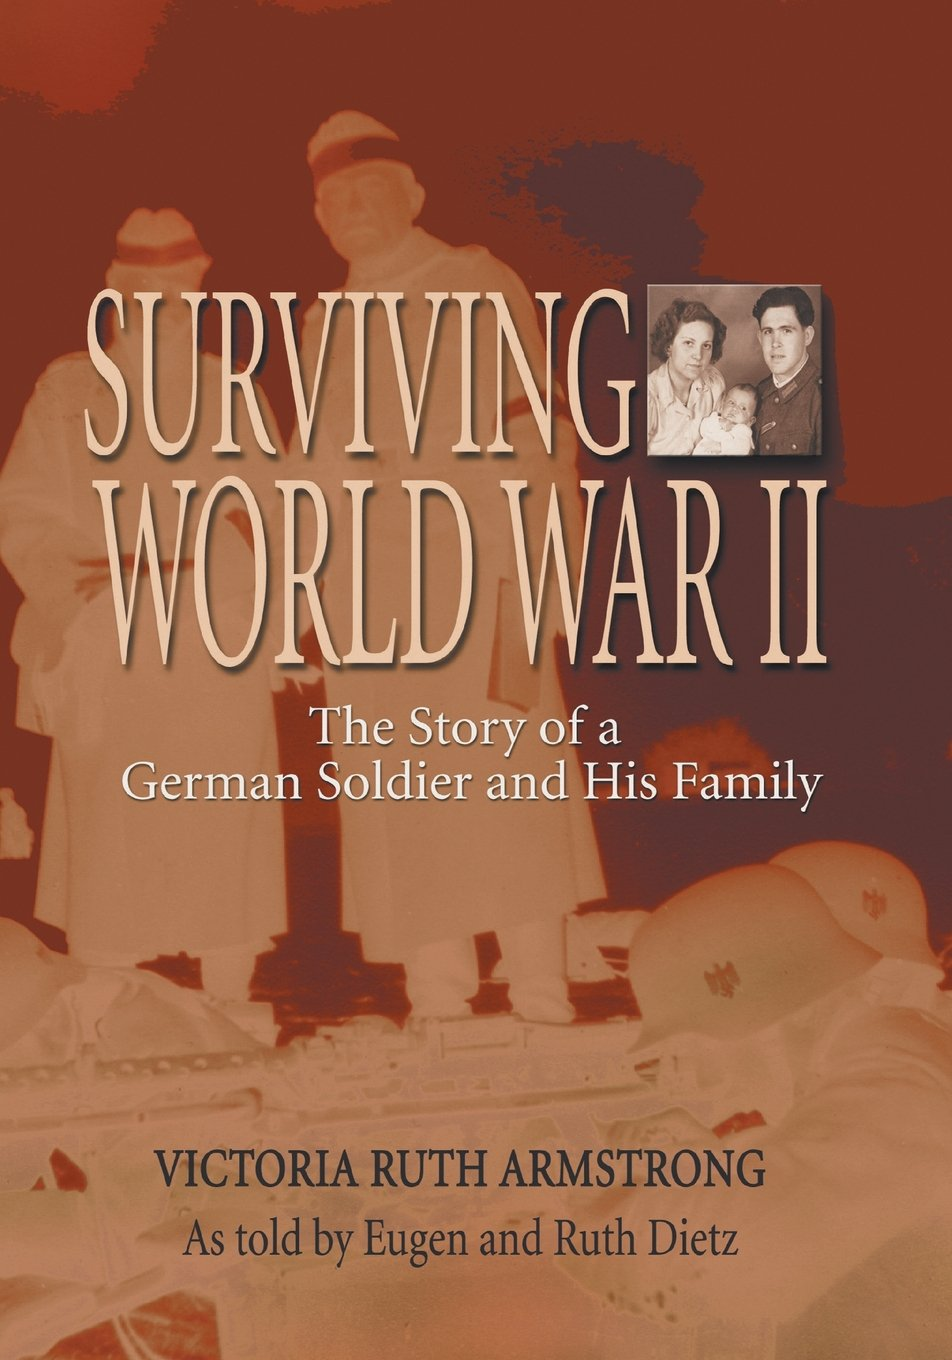 Read Online Surviving World War II: The Story of a German Soldier and His Family pdf epub